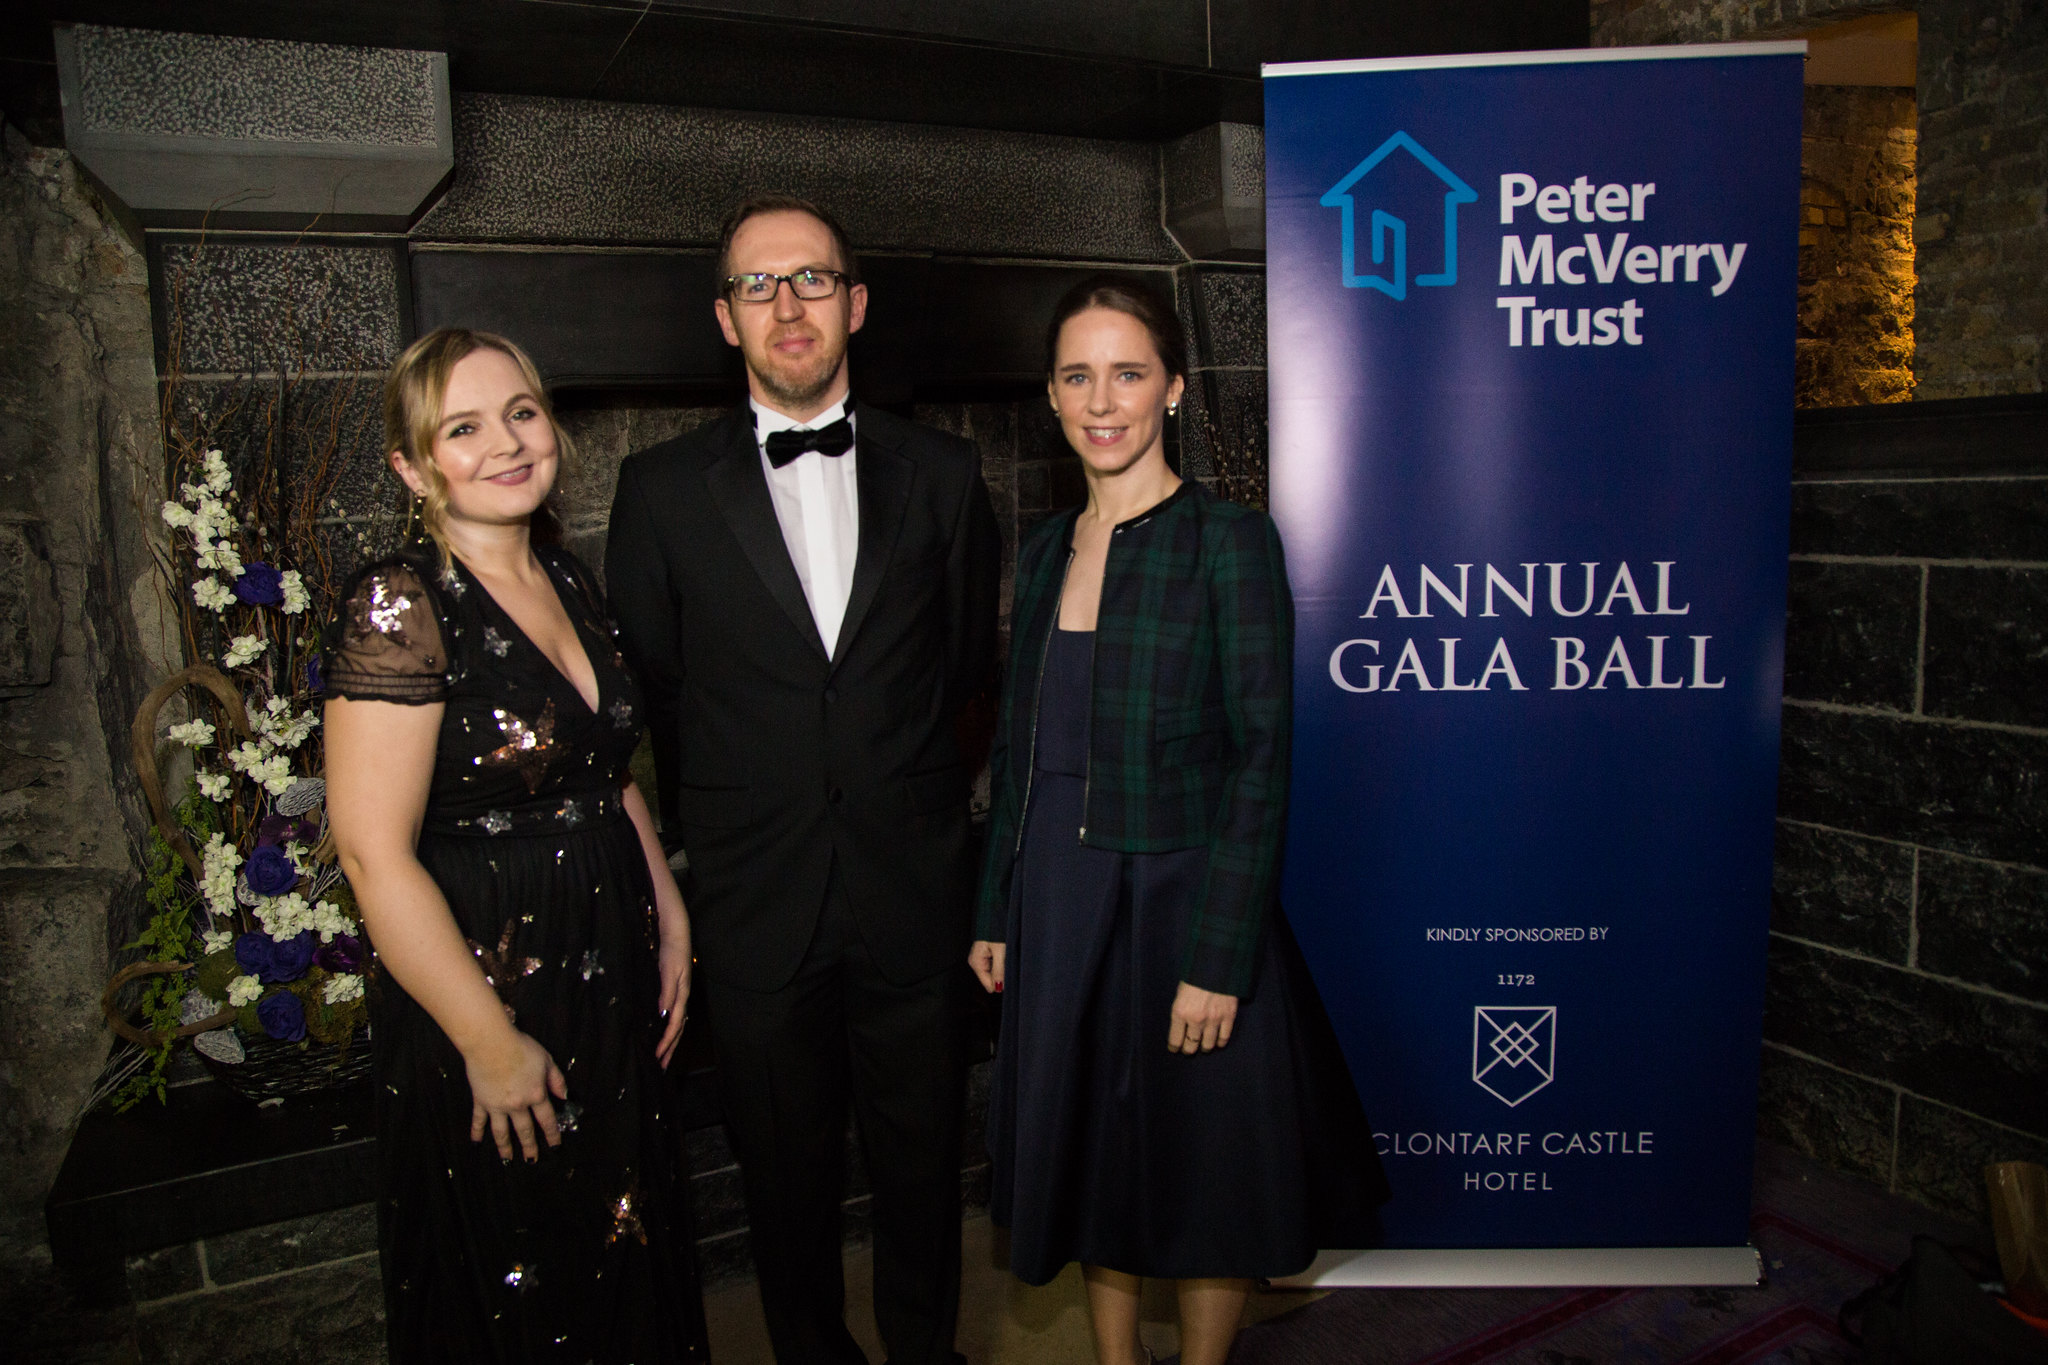 Peter McVerry Trust Gala Ball 2017